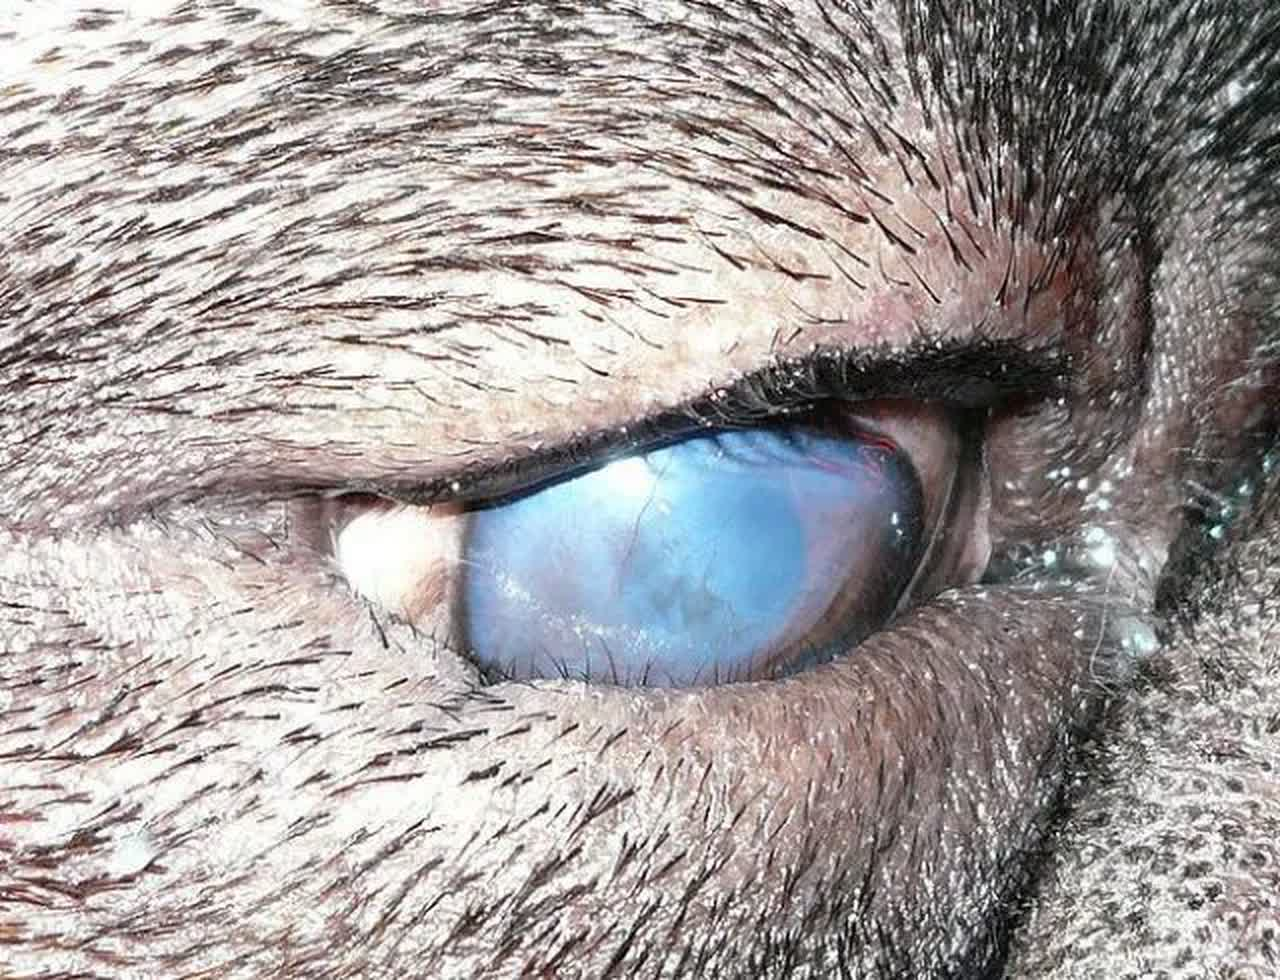 A dog with entropion of the lower eyelid